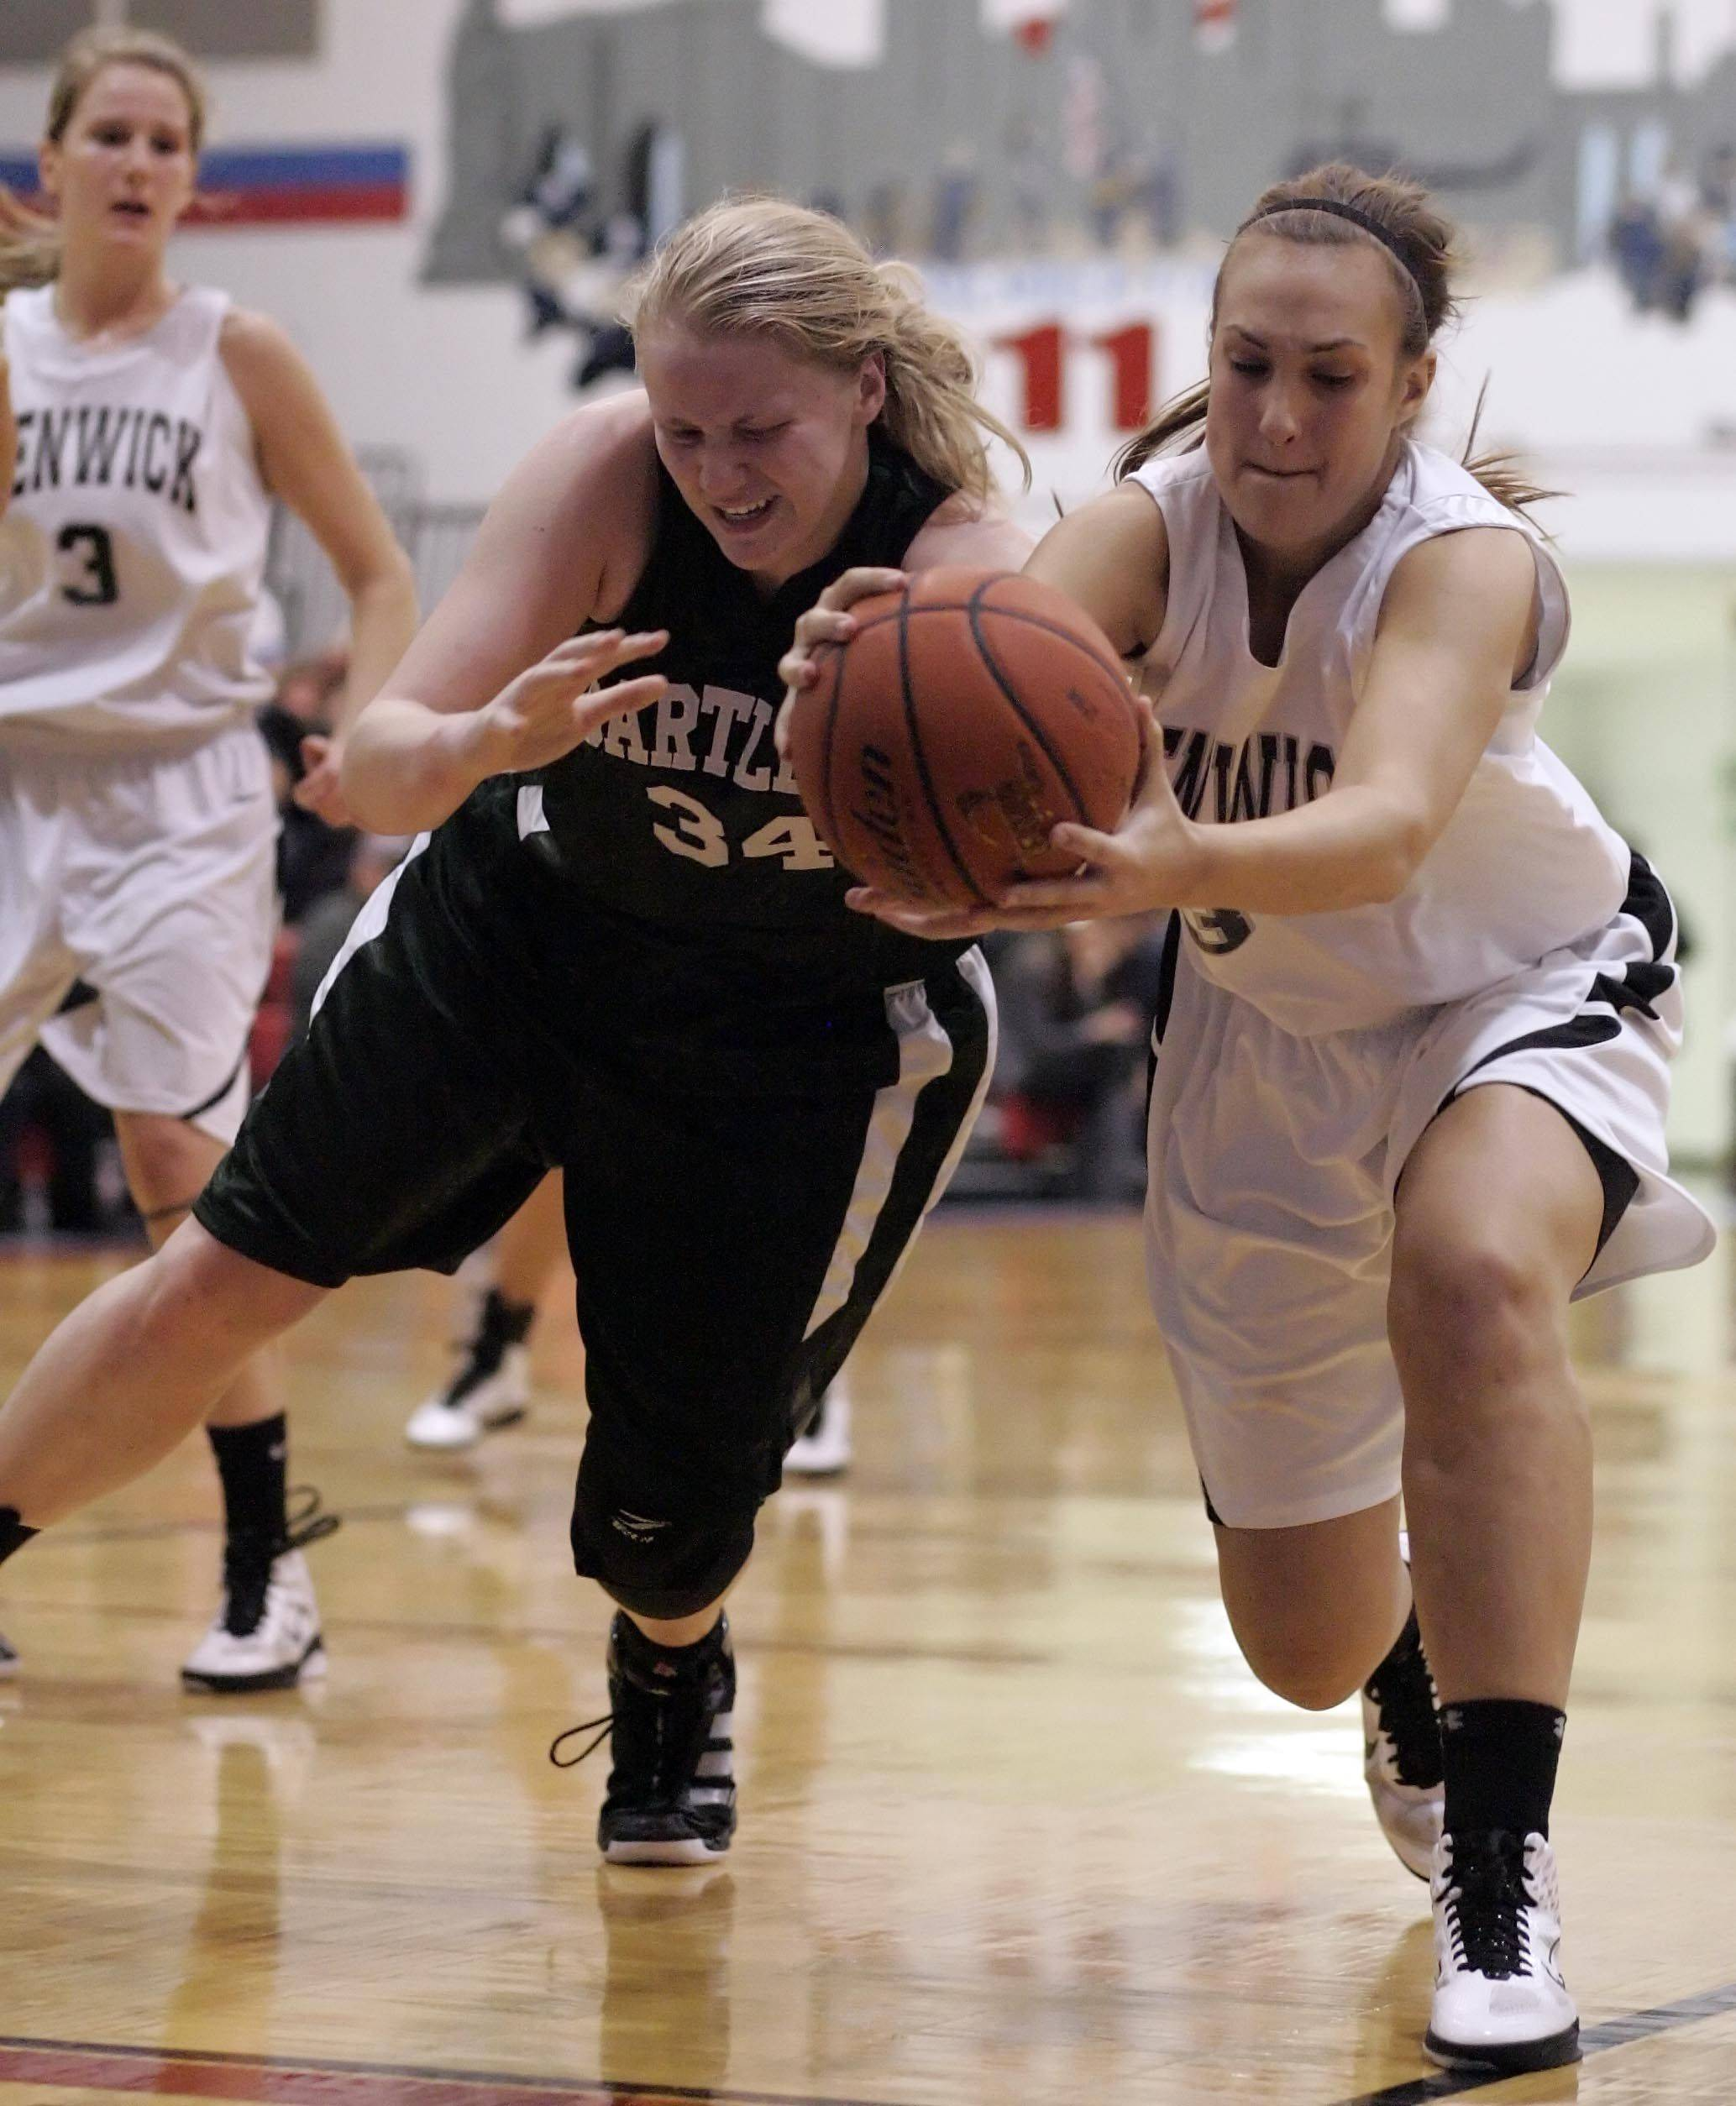 Bartlett center/forward Christina Carlson (34) battles Heather Casper, 33, for a rebound during Bartlett vs Fenwick in the Championship game of the Charger Classic girls basketball tournament at Dundee-Crown High School in Carpentersville Thursday, December 30, 2010.